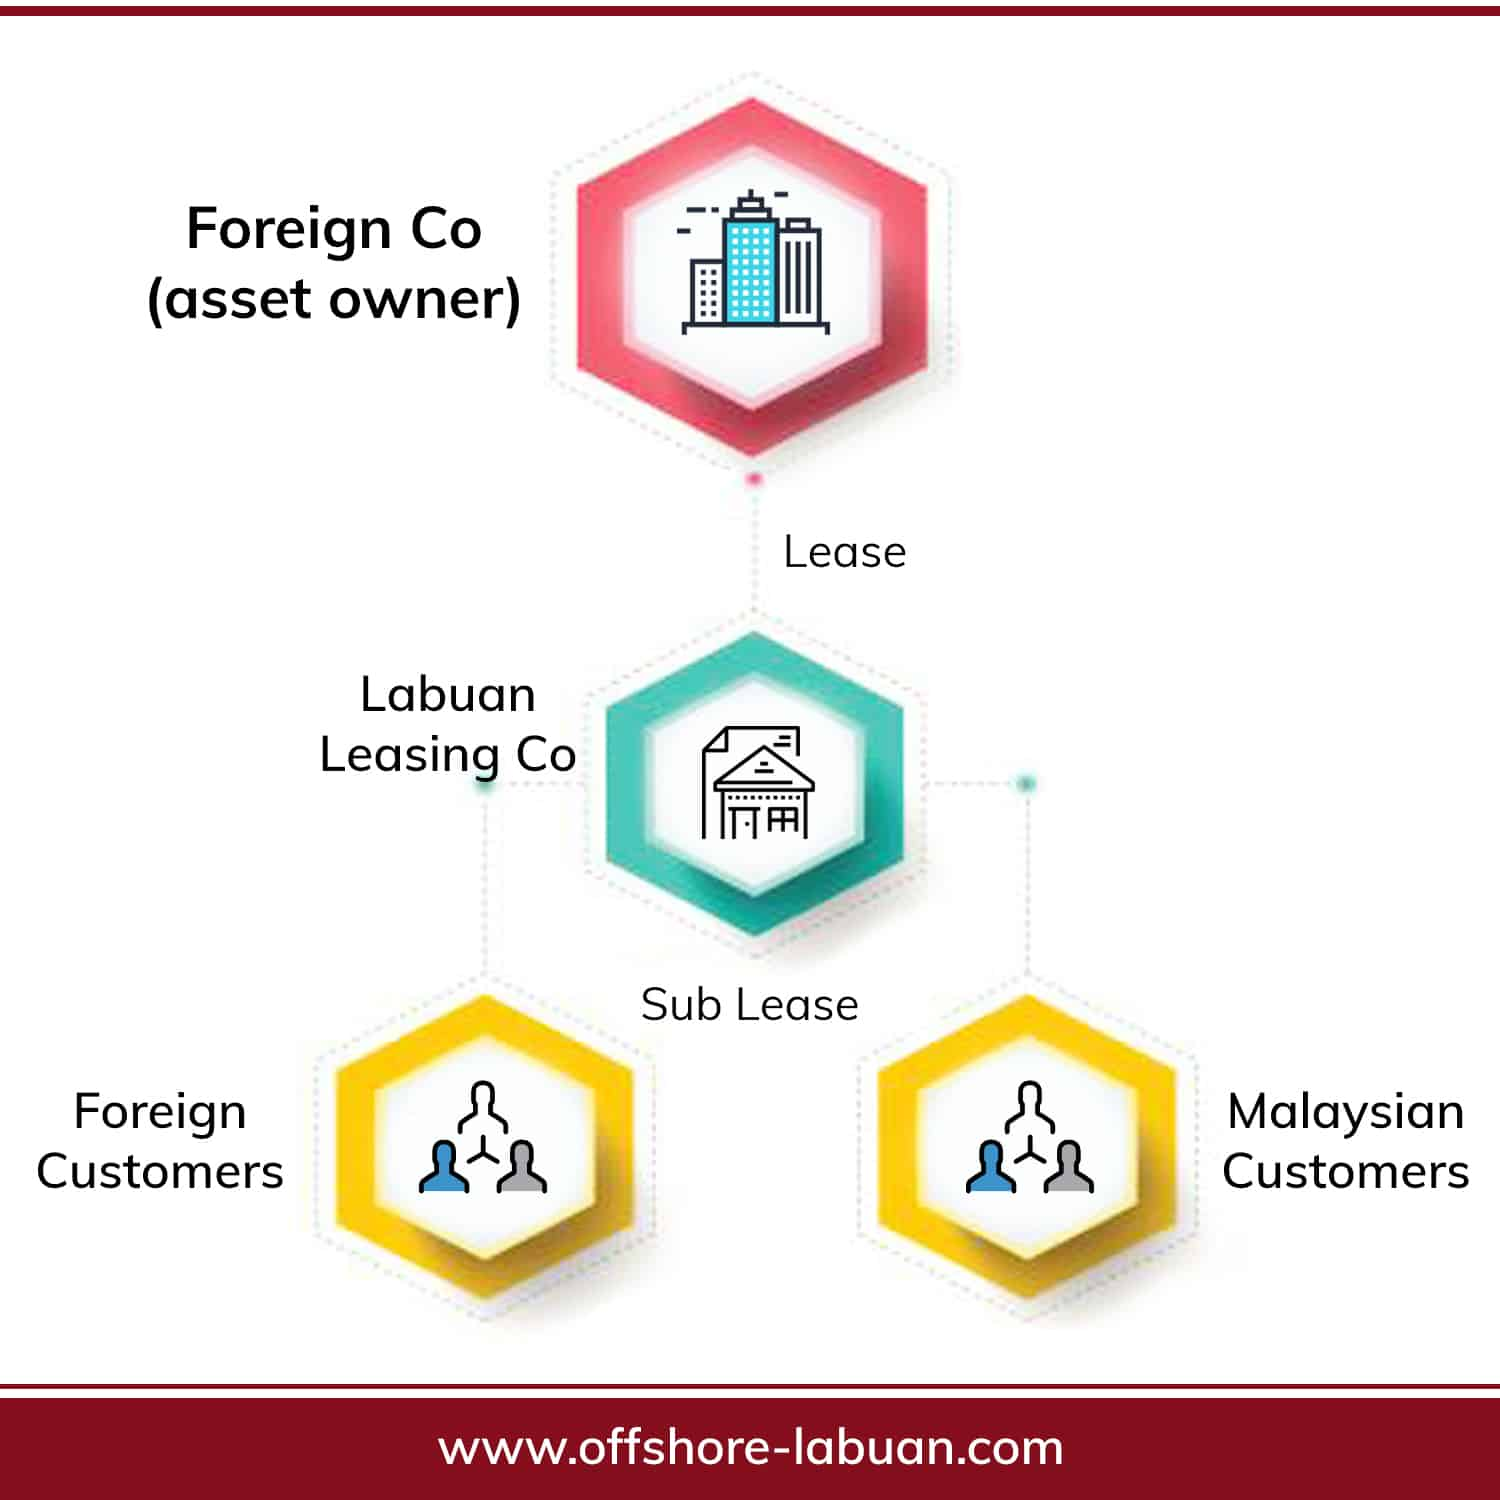 LABUAN-LEASING-STRUCTURE-Foreign-Co-asset-owner-1